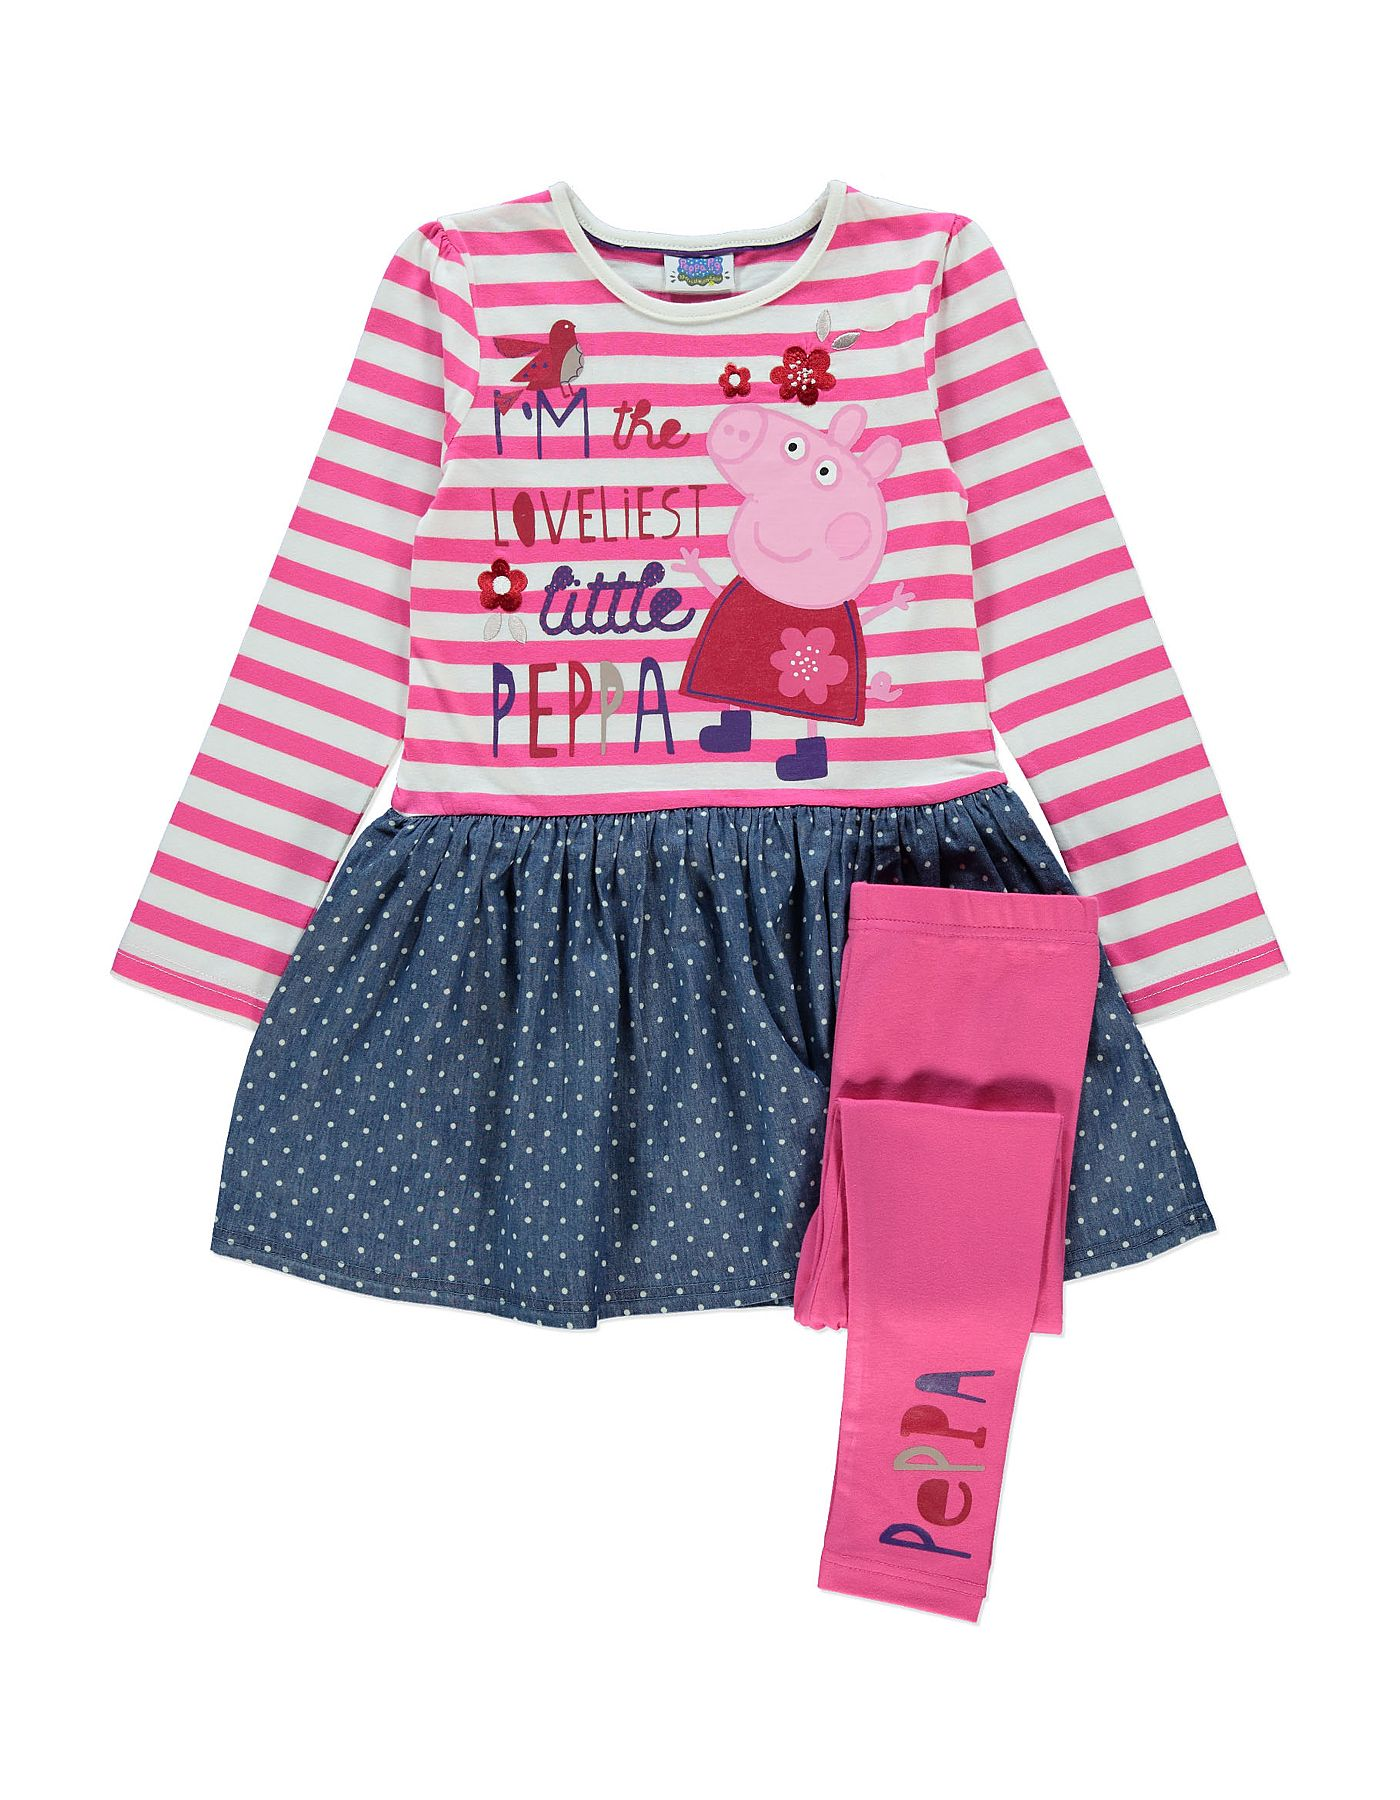 Peppa Pig Dress and Leggings Set from George at ASDA | ALEYNA ...